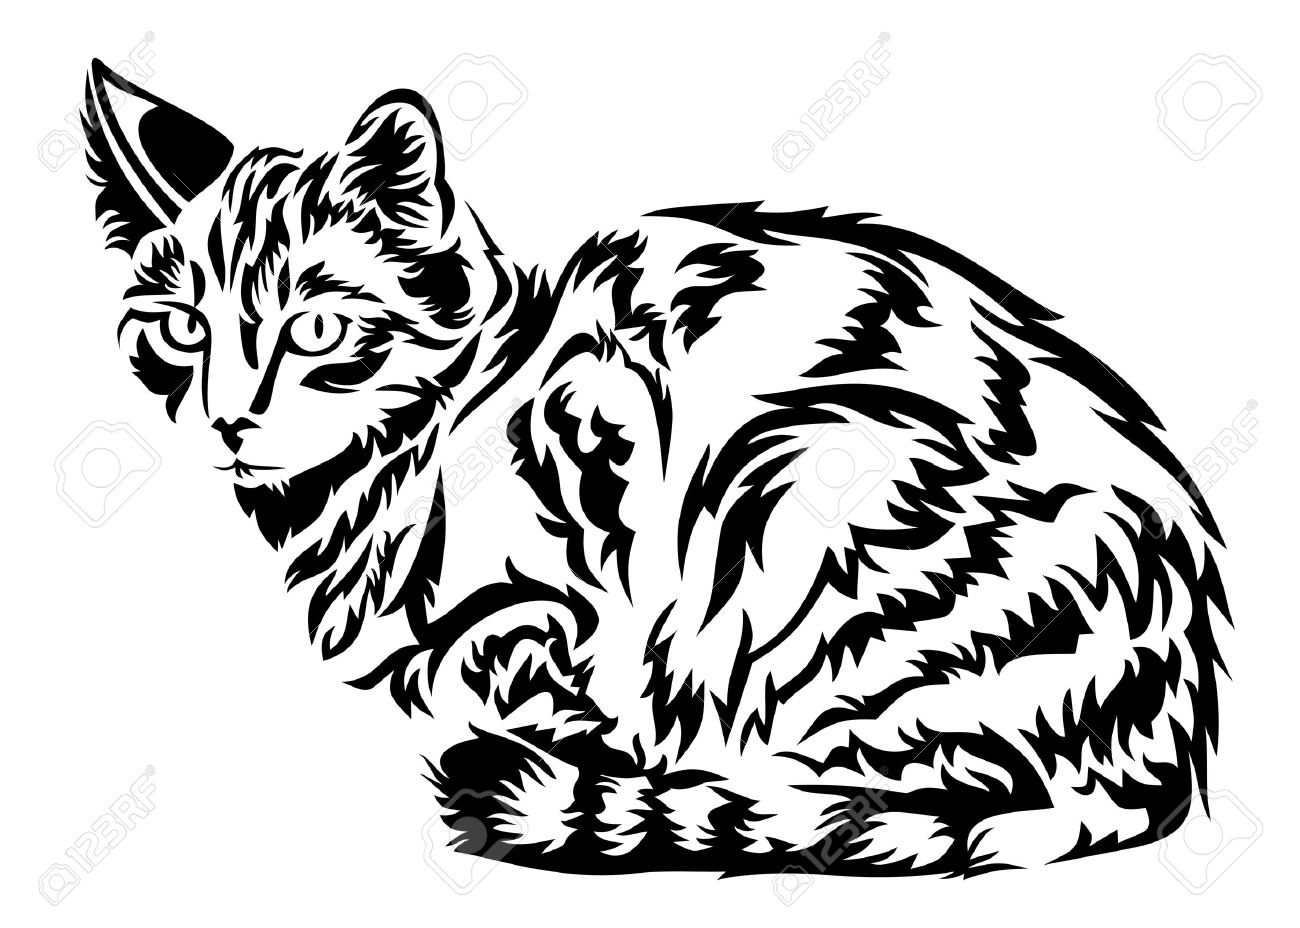 cat in vector royalty free cliparts vectors and stock illustration rh 123rf com victory cat cat vector logo